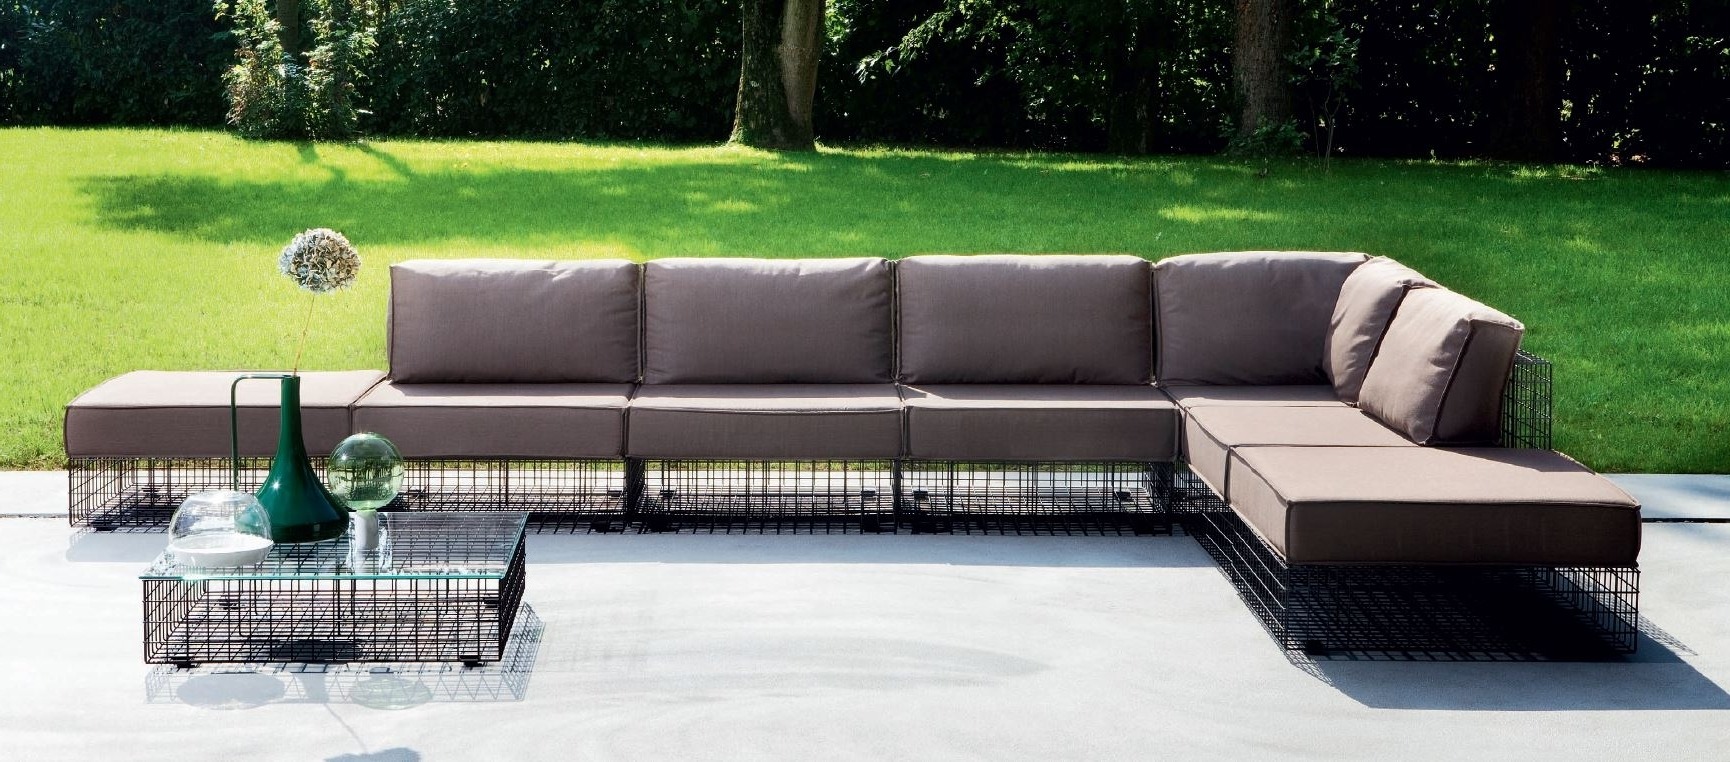 Well Known Awesome Modern Metal Garden Furniture Contemporary – Liltigertoo Intended For Outdoor Sofas And Chairs (View 13 of 15)